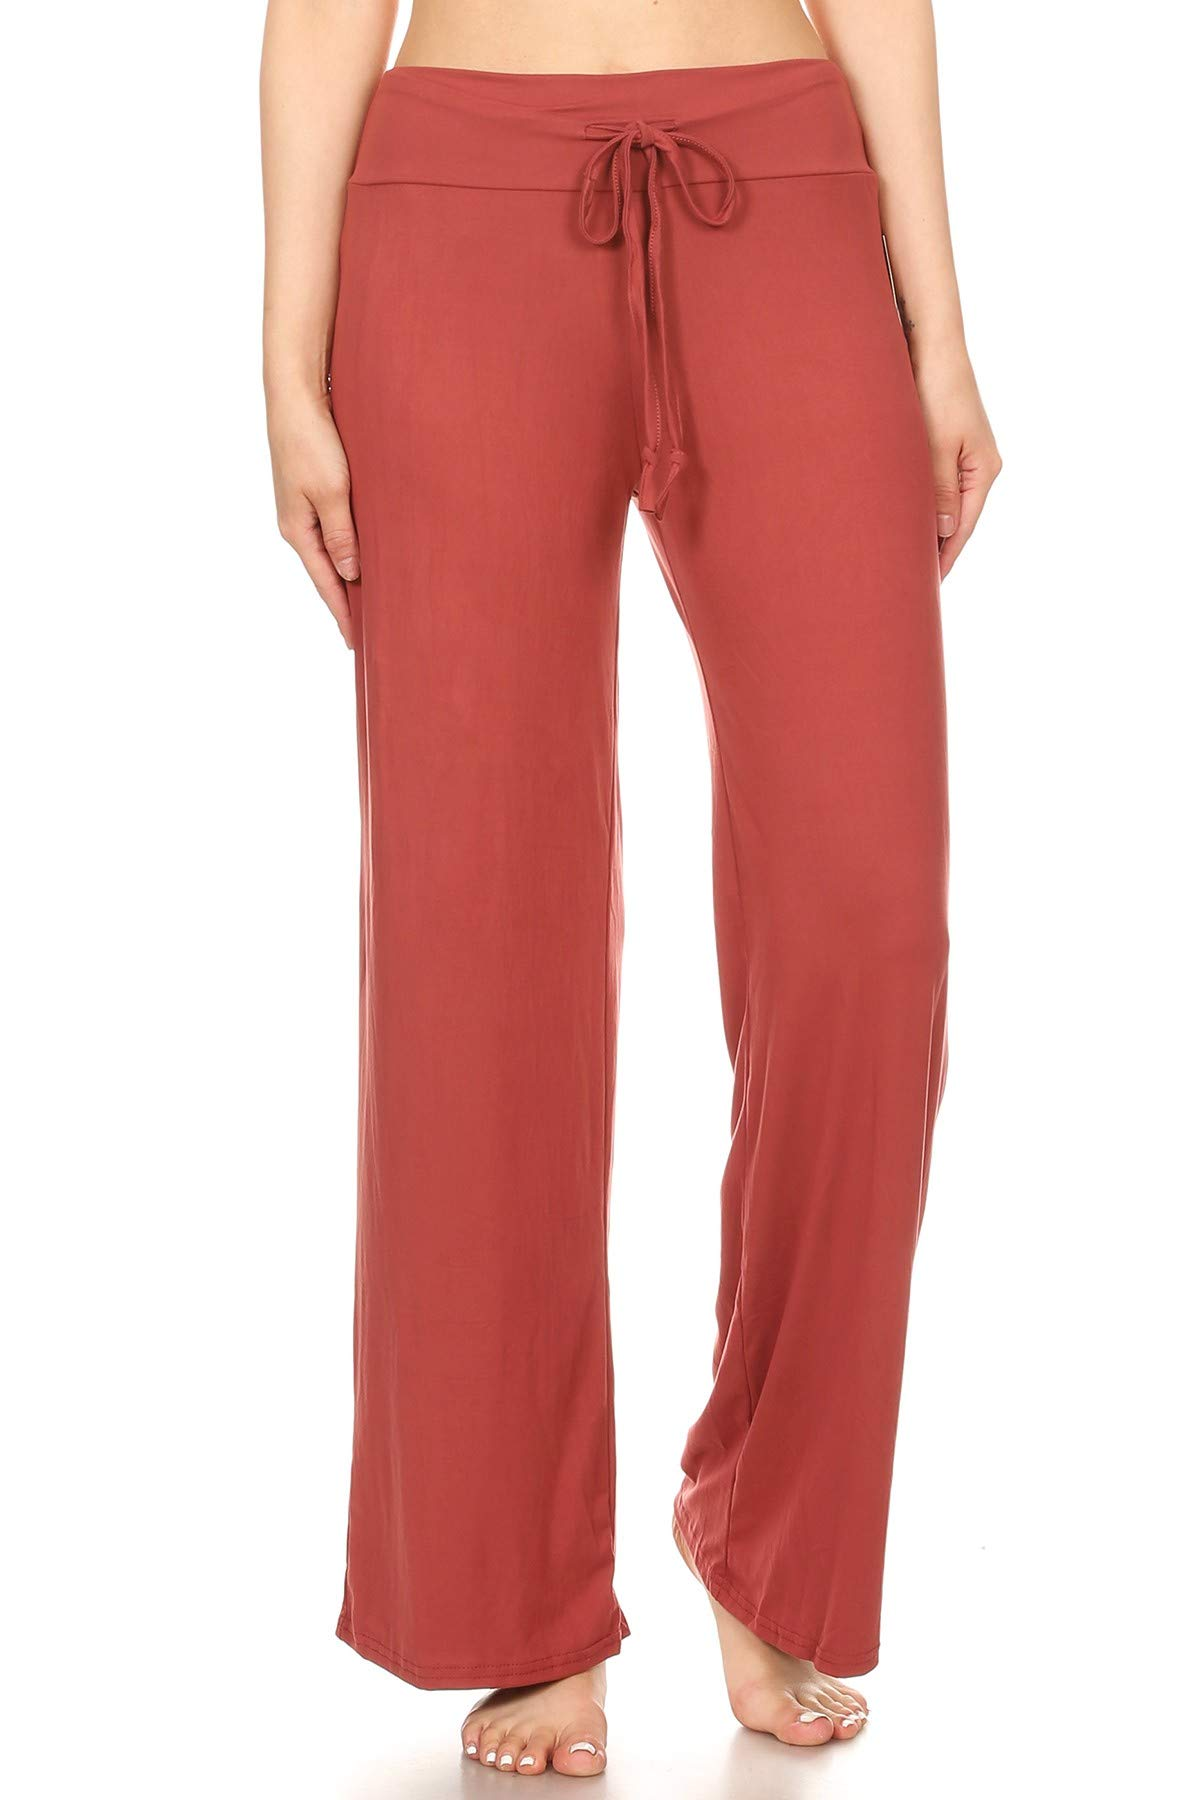 Leggings Depot PJ10SOLID-MARSALA-XL Lounge Solid Pants, X-Large by Leggings Depot